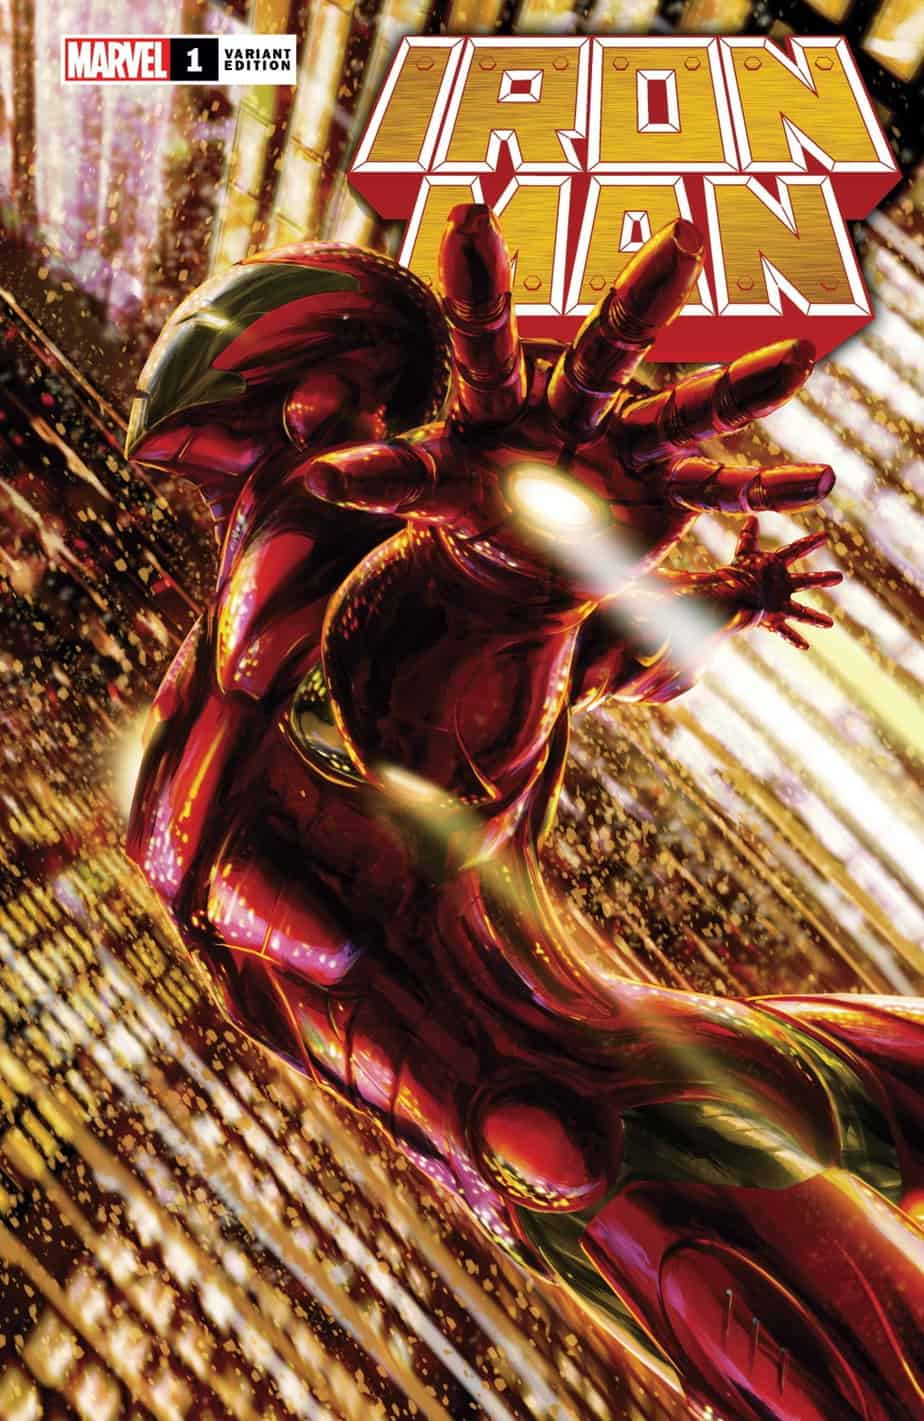 IRON MAN #1 - Cover G